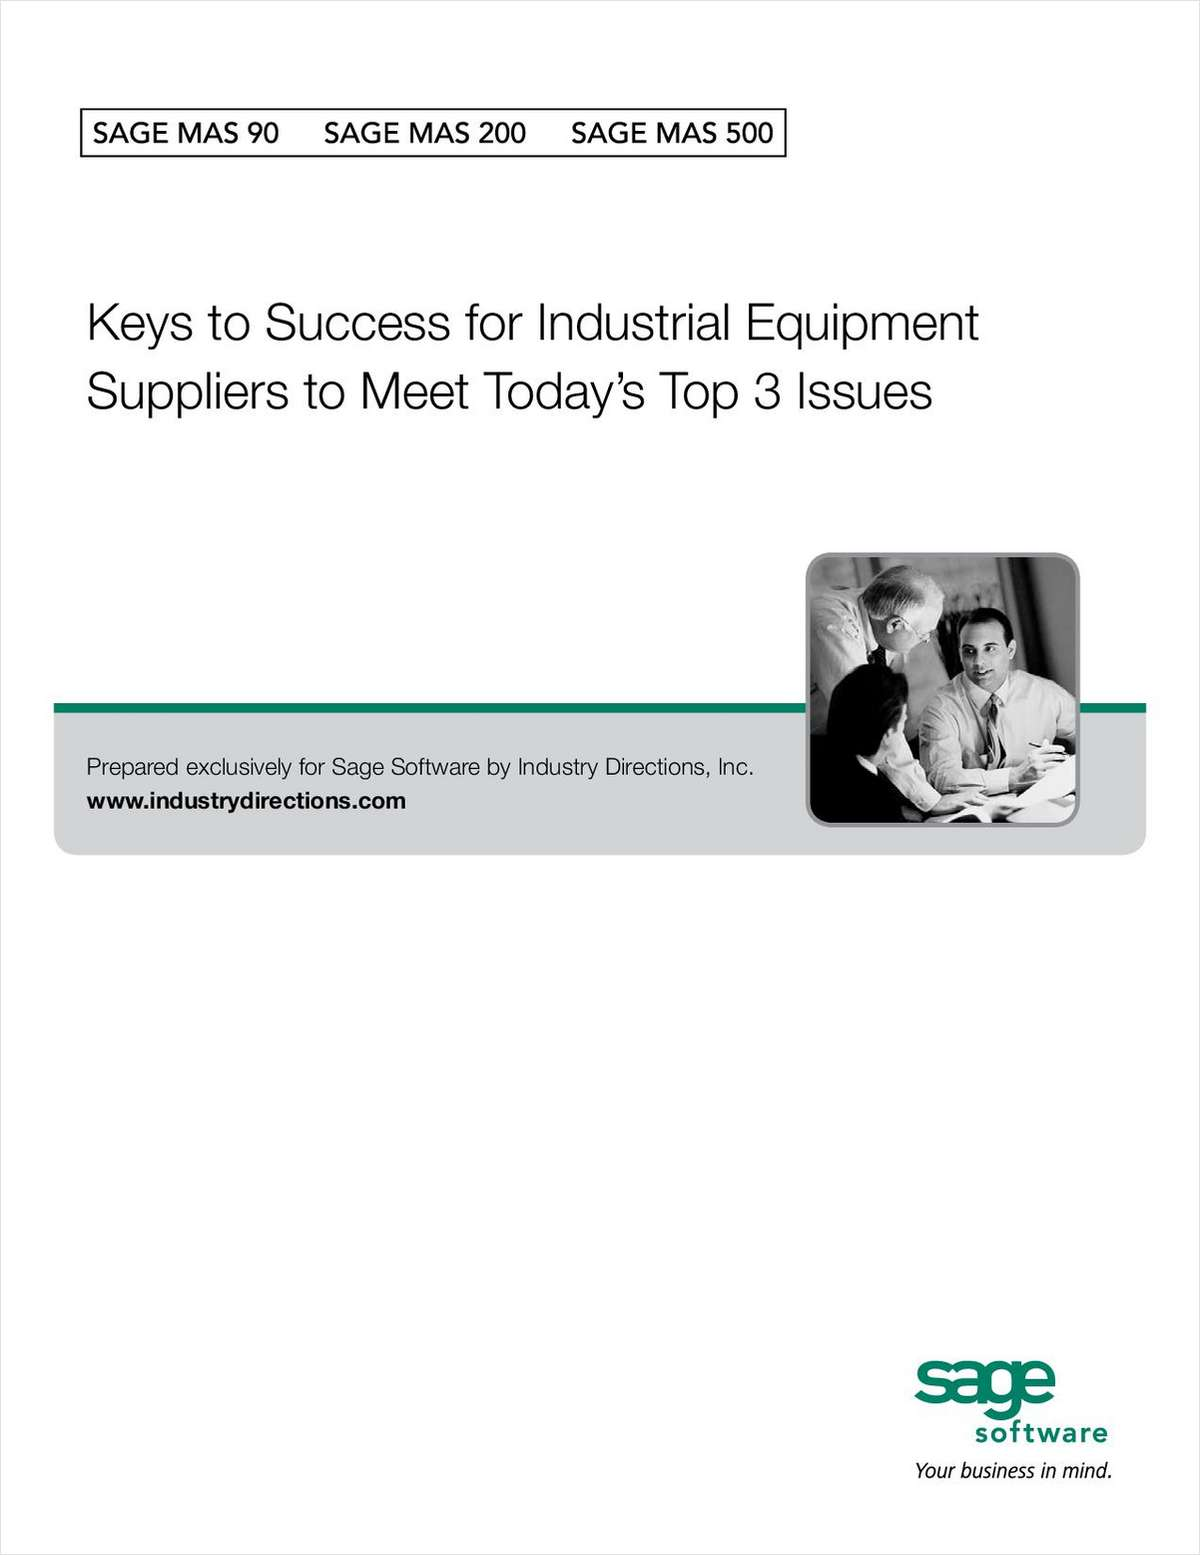 Keys to Success for Industrial Equipment Suppliers to Meet Today's Top 3 Issues